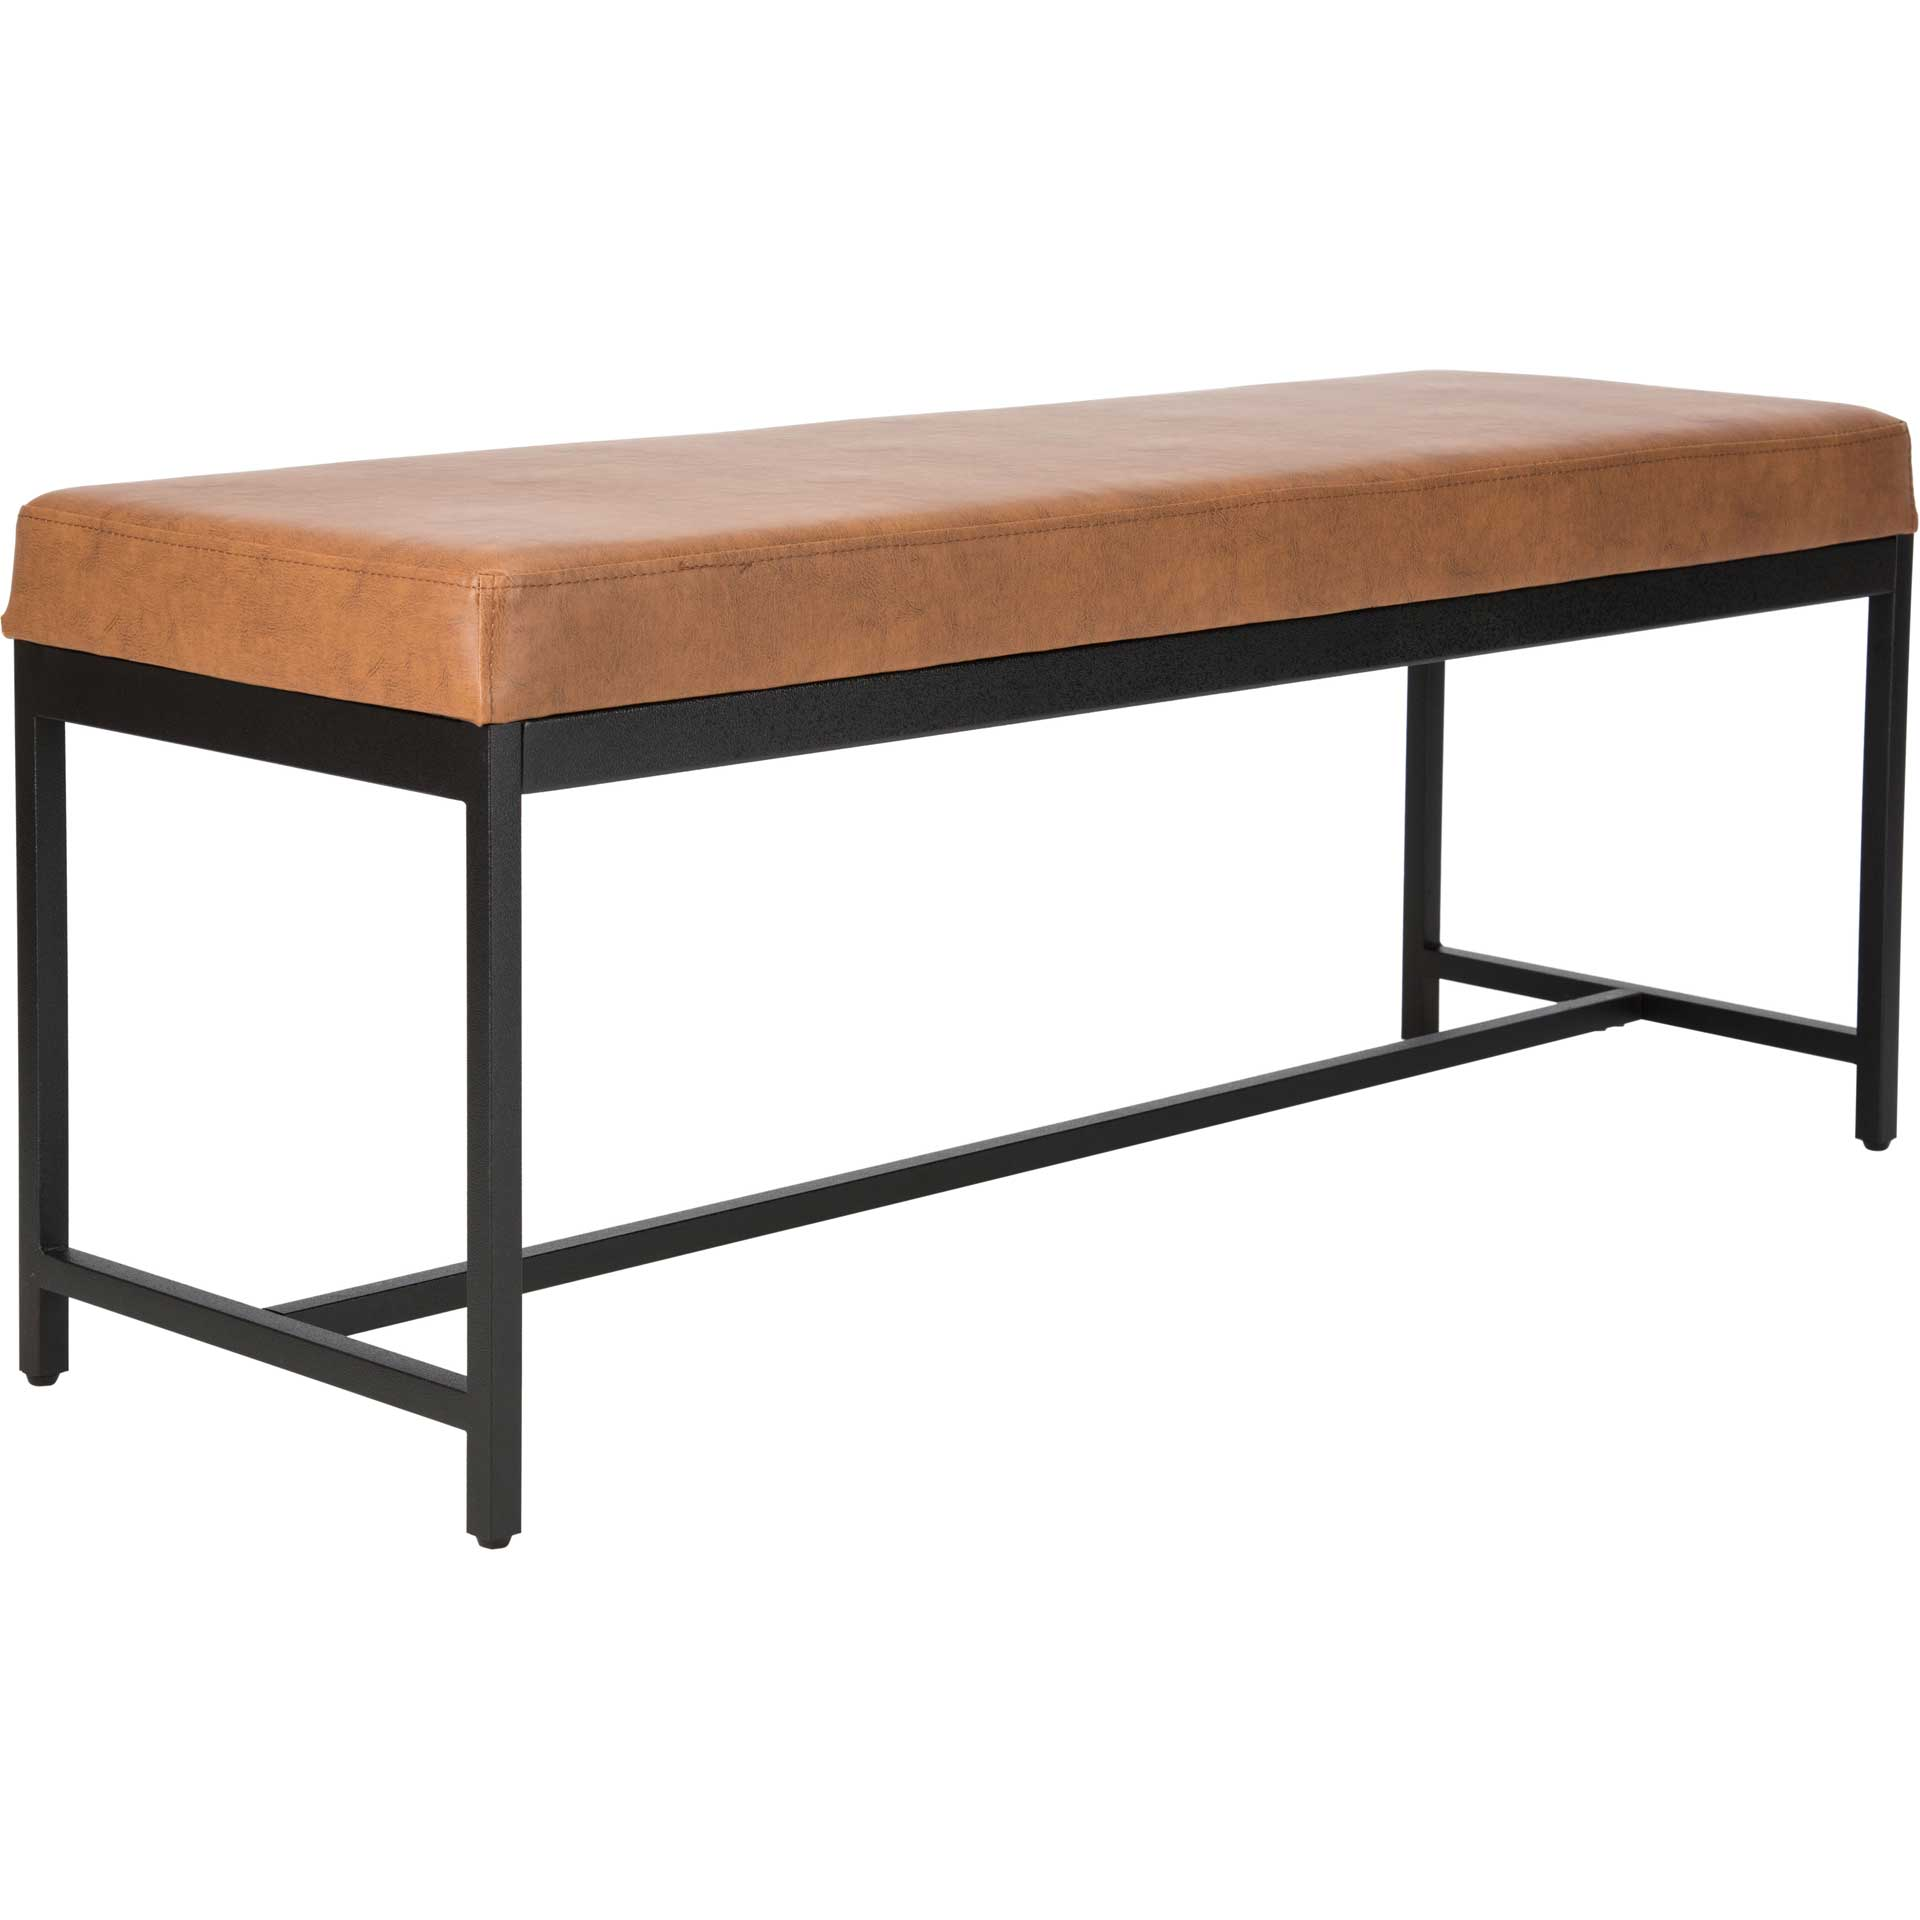 Chamonix Faux Leather Bench Brown